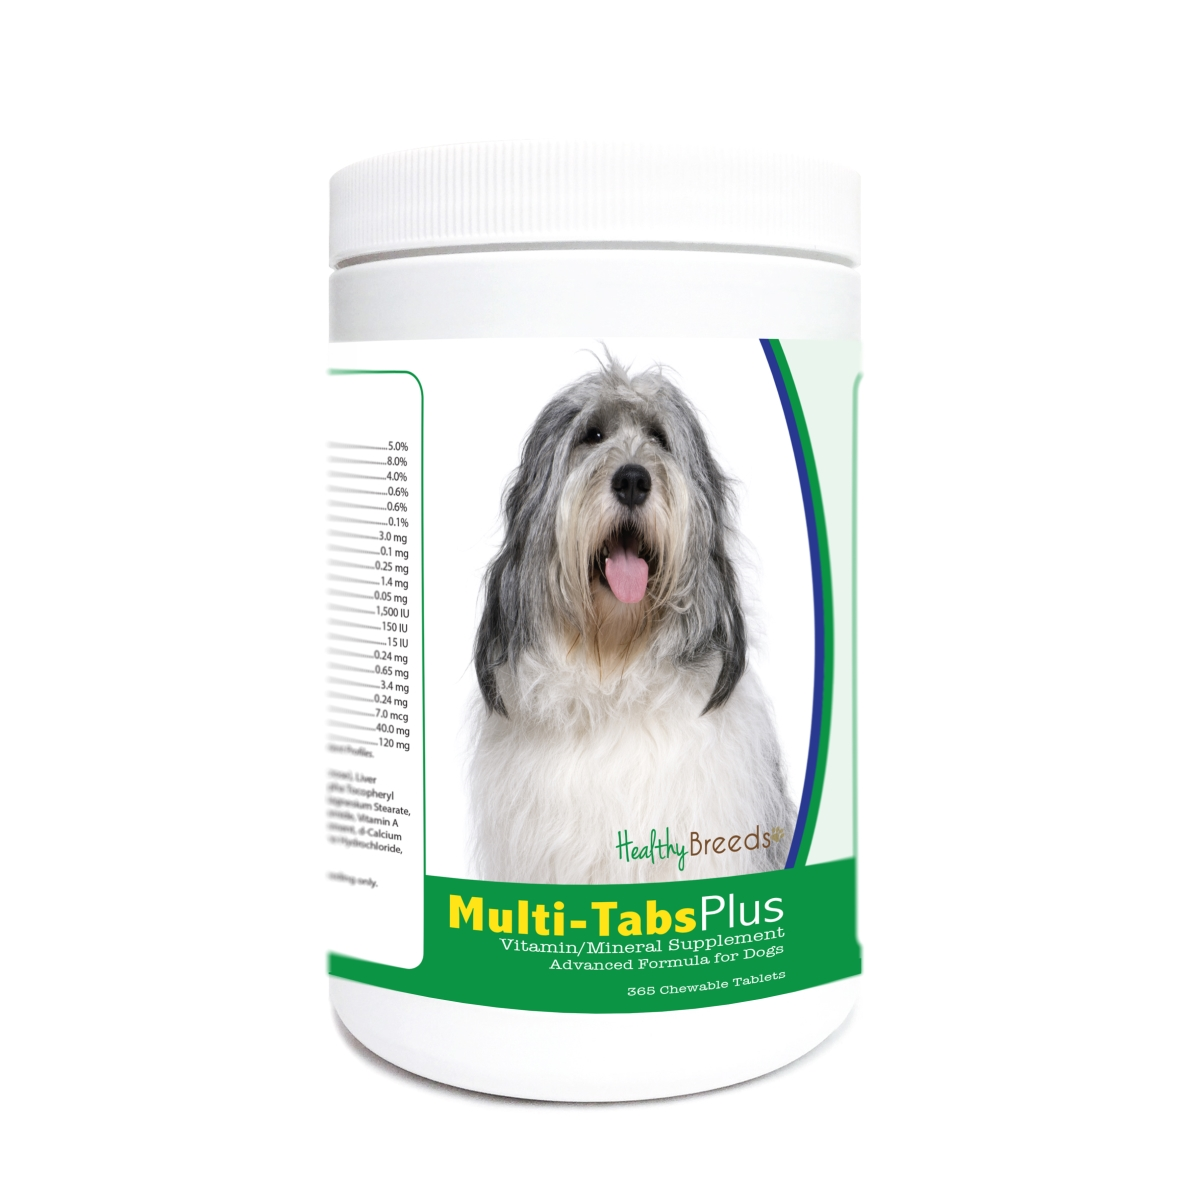 Healthy Breeds 840235179382 Polish Lowland Sheepdog Multi-Tabs Plus Chewable Tablets - 365 Count